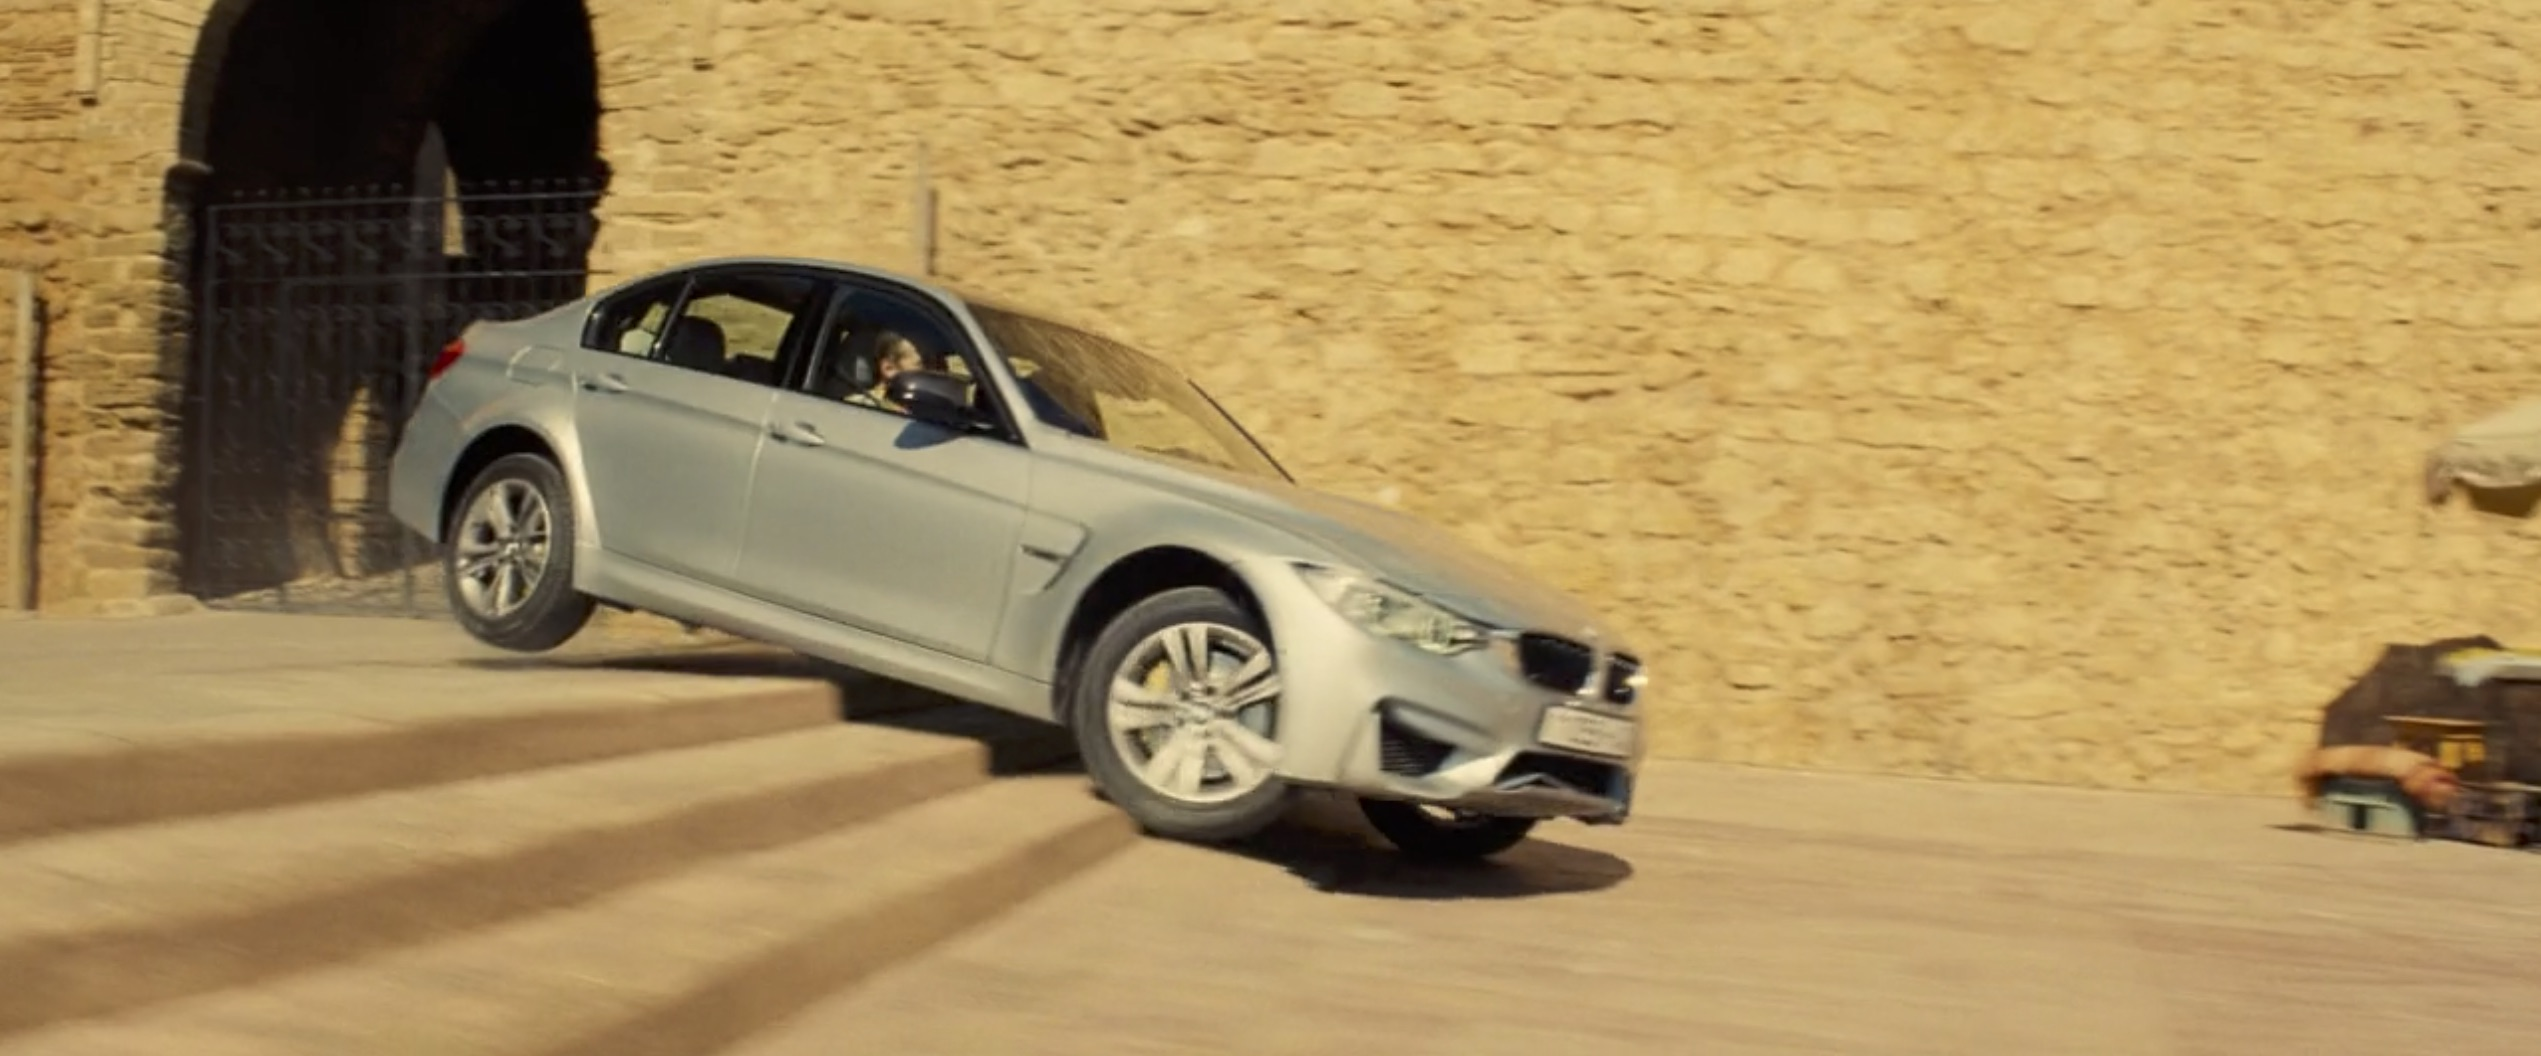 Mission Impossible: Rogue Nation bmw on stairs